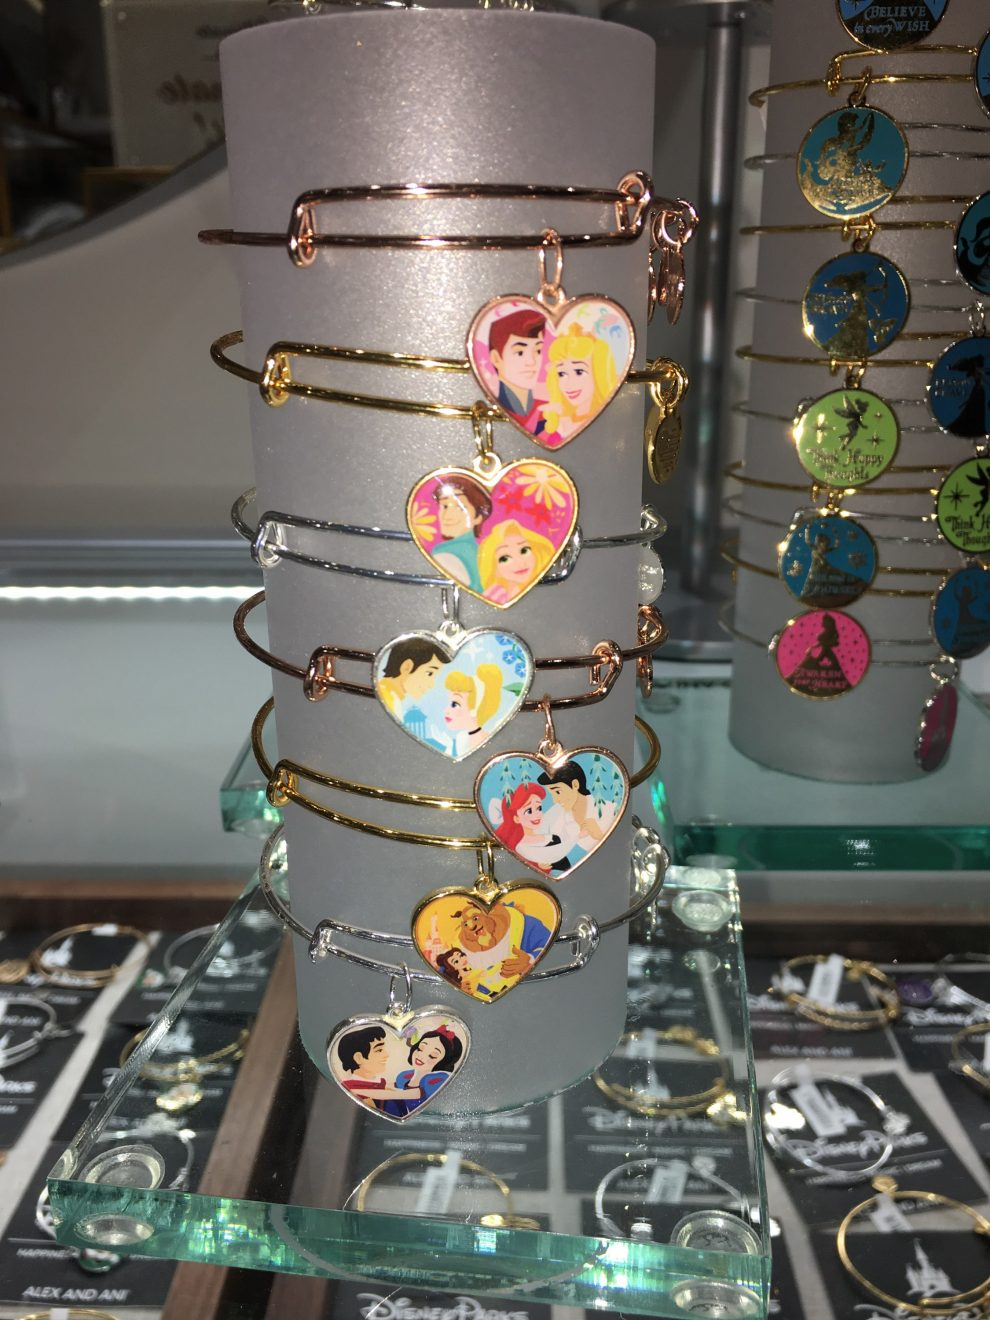 Alex And Ani Bangles Featuring Disney Couples In Love